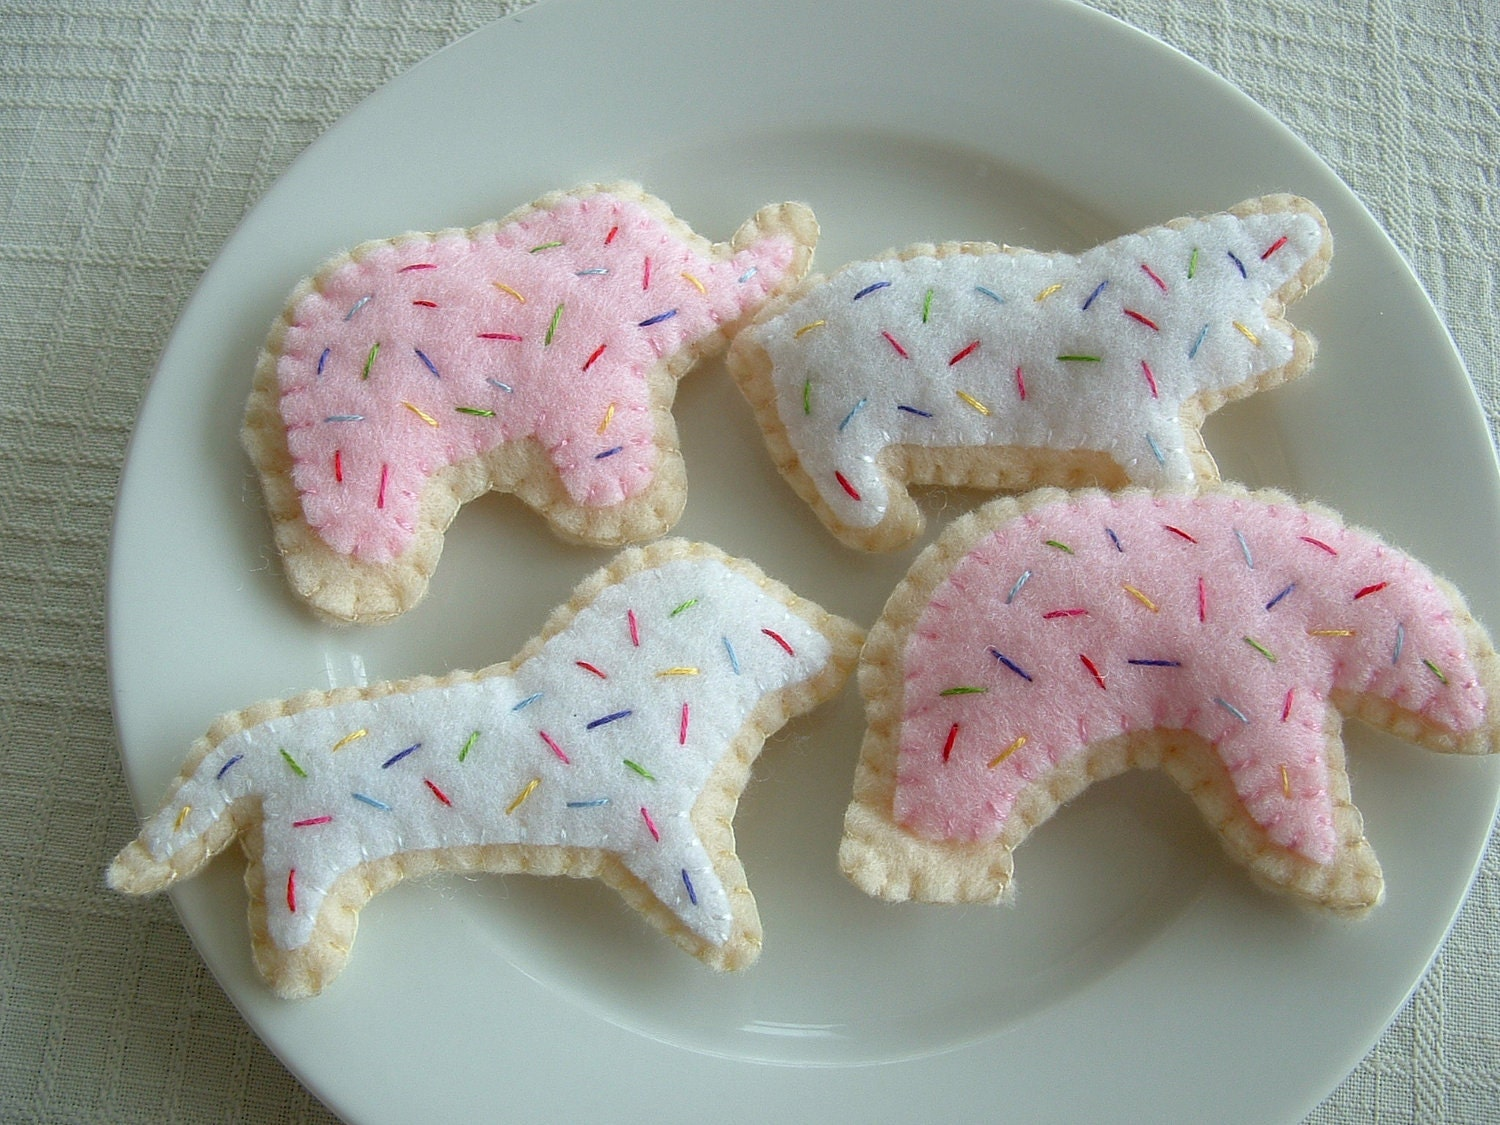 Felt Animal Crackers Fun Felt Food